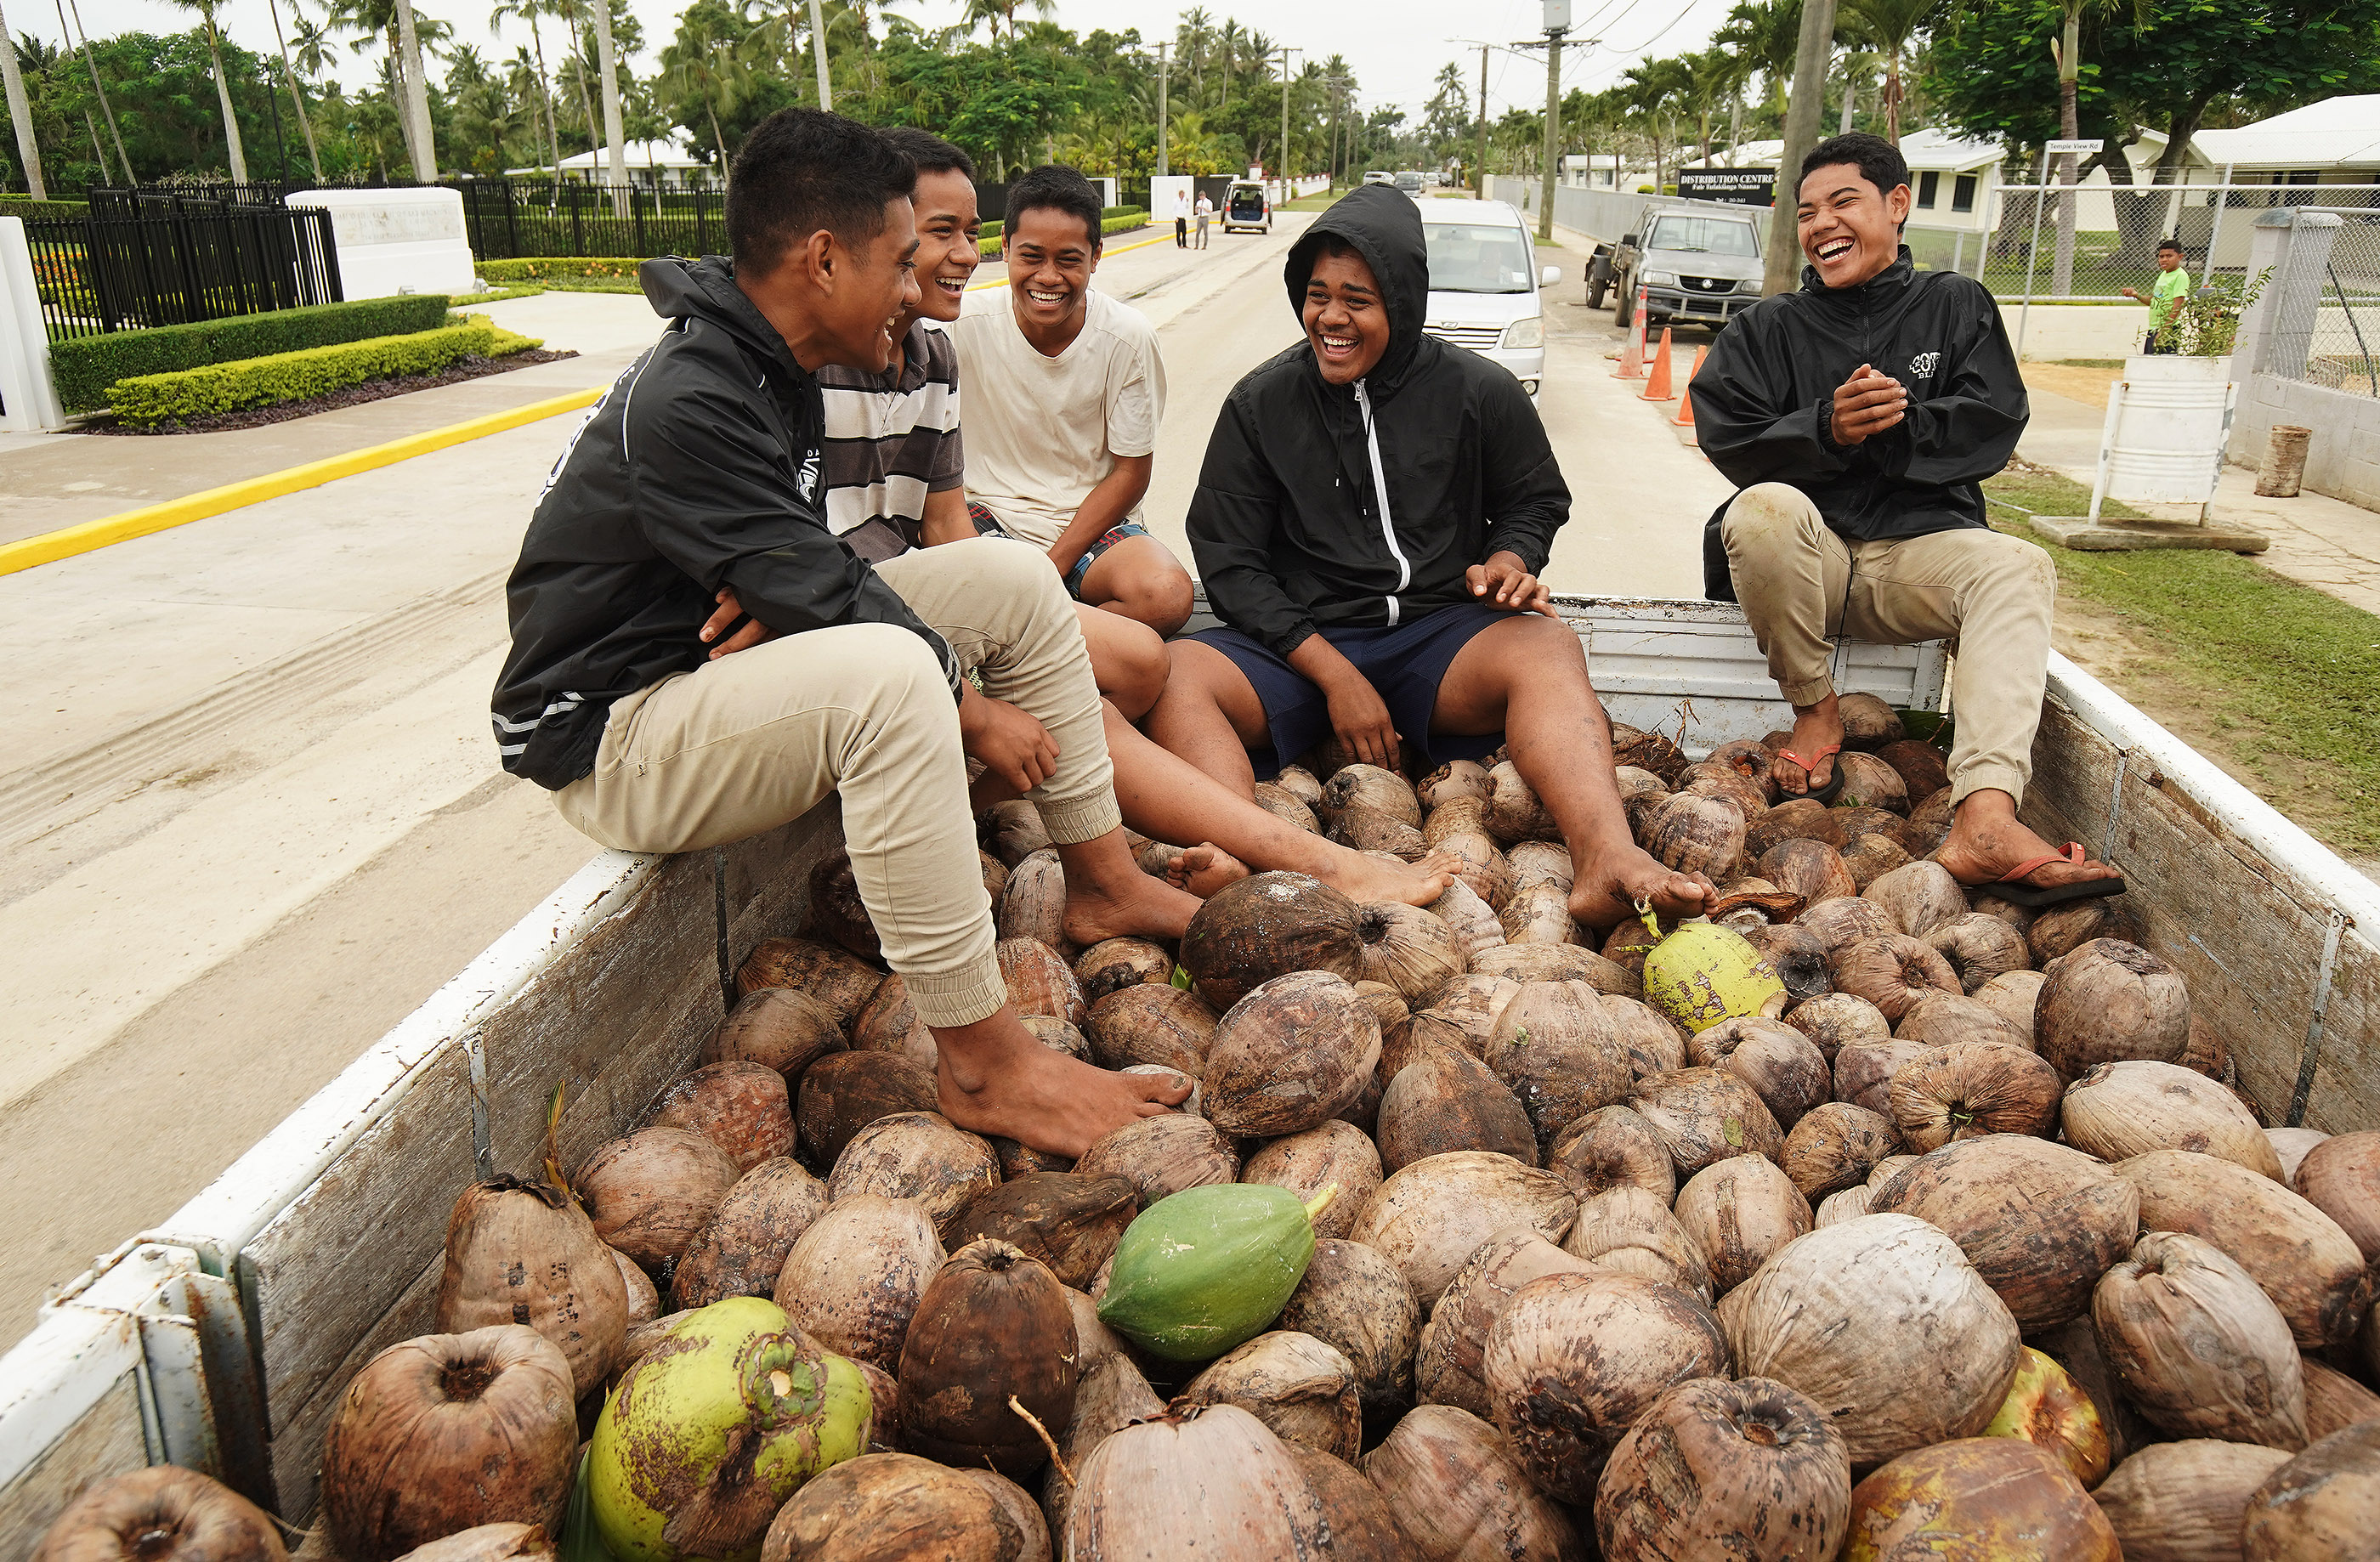 Coconut pickers ride in the back of a truck in Tonga on May 23, 2019.